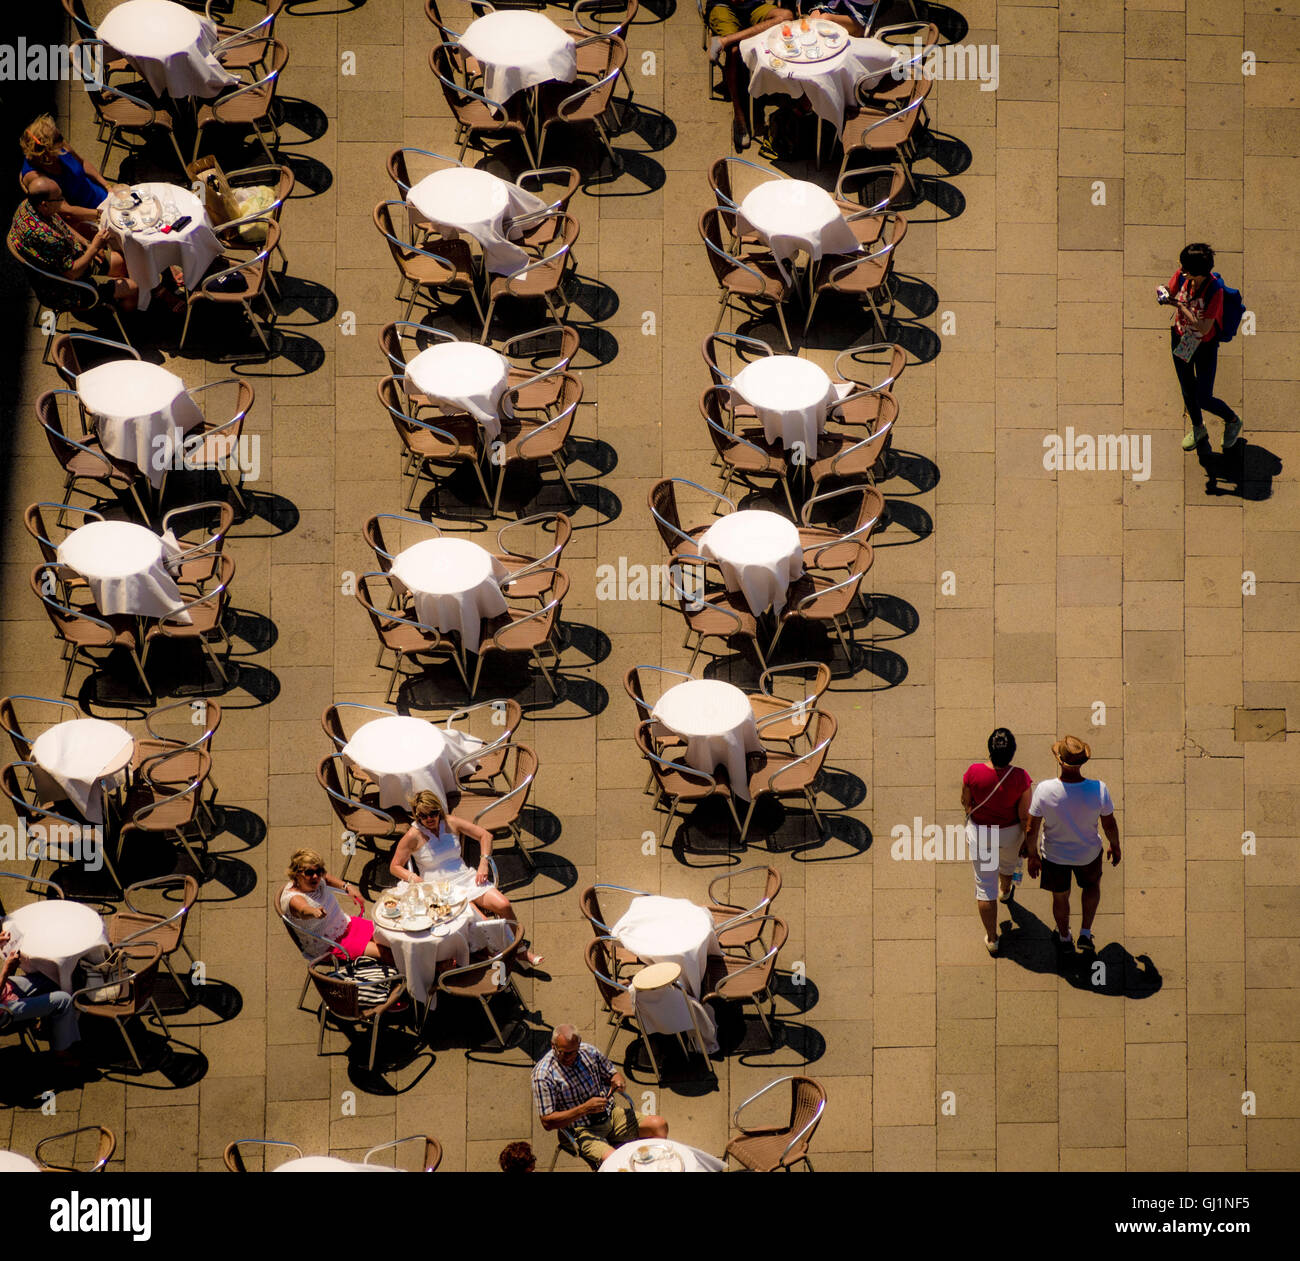 Aerial View Of St Marks Square With People Sitting At The Venice Italy